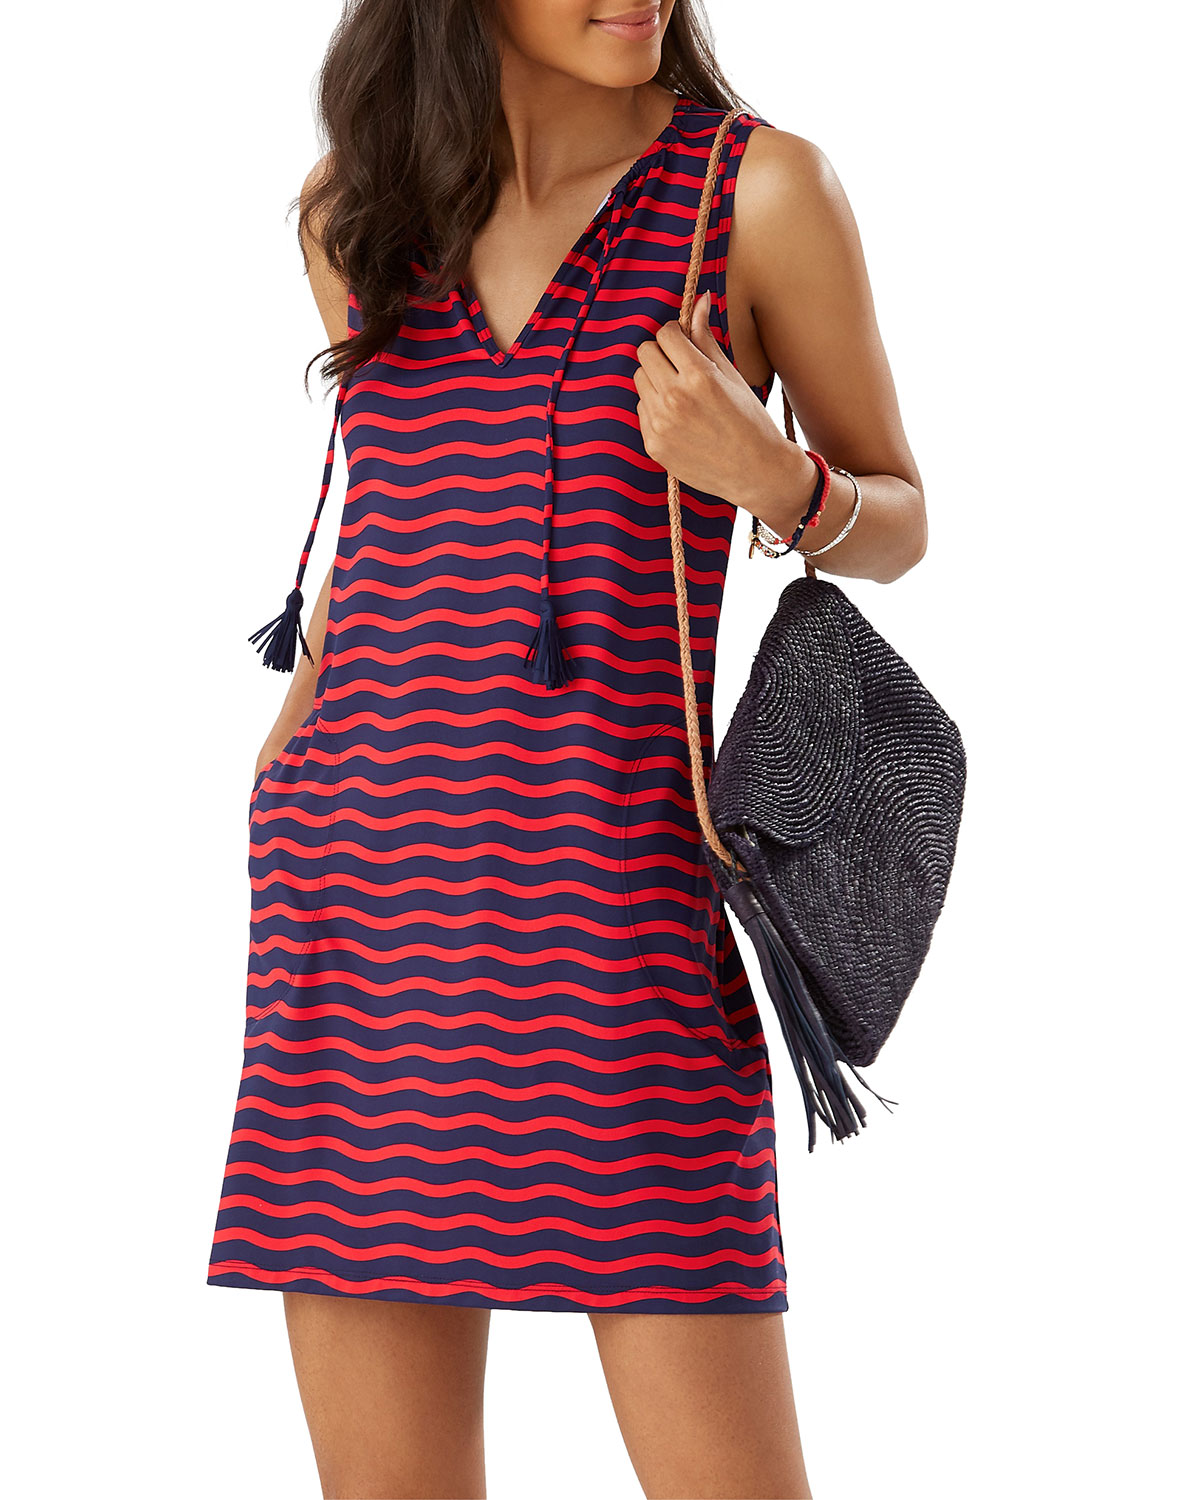 Tommy Bahama Dresses SEA SWELL STRIPED V-NECK SLEEVELESS SPA DRESS